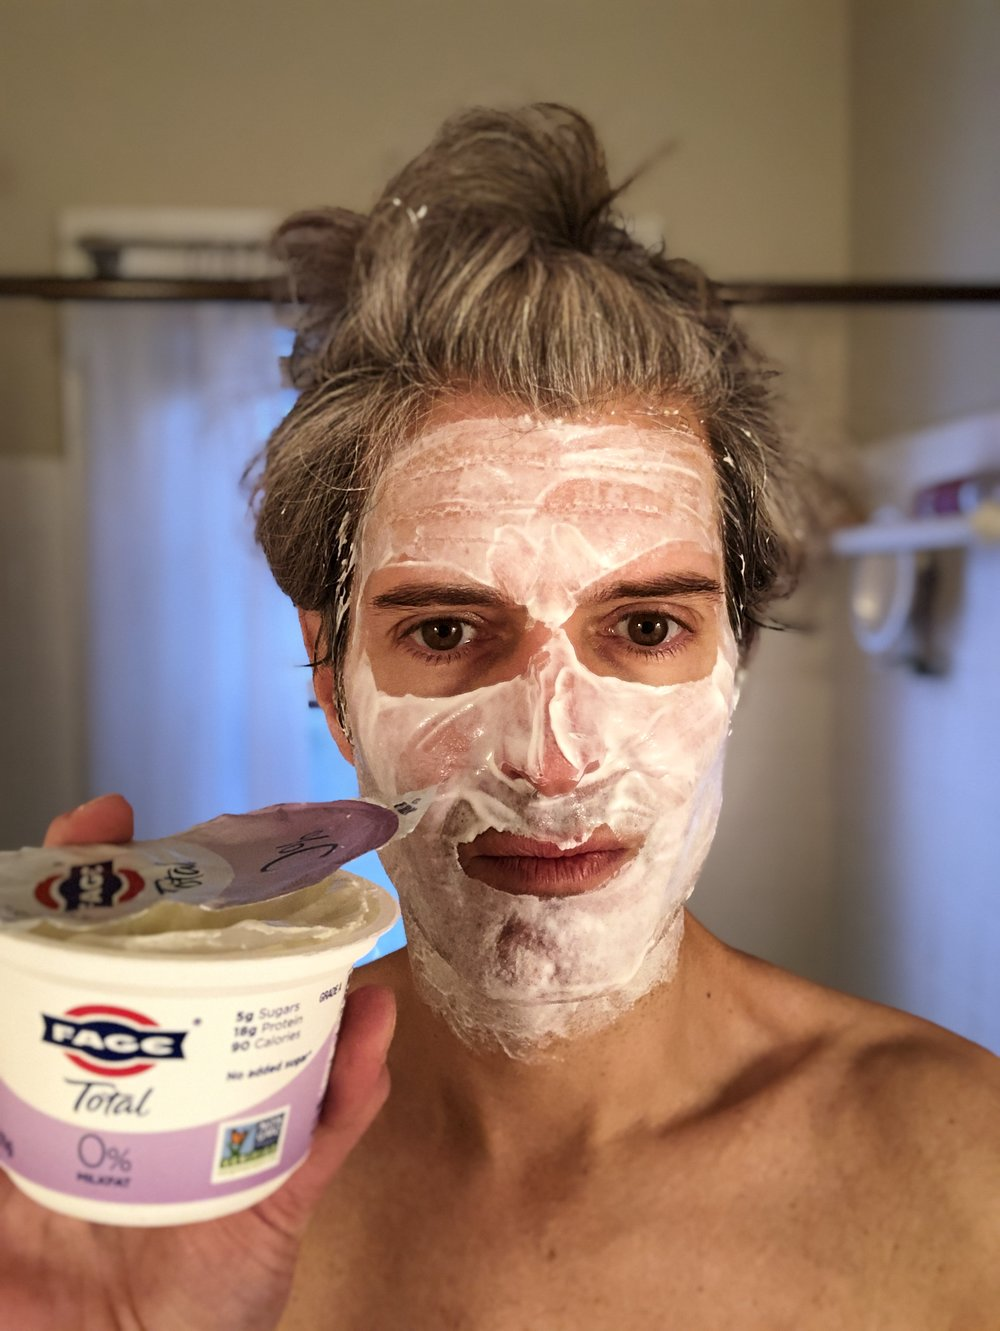 Greek Yogurt Facemask.jpg